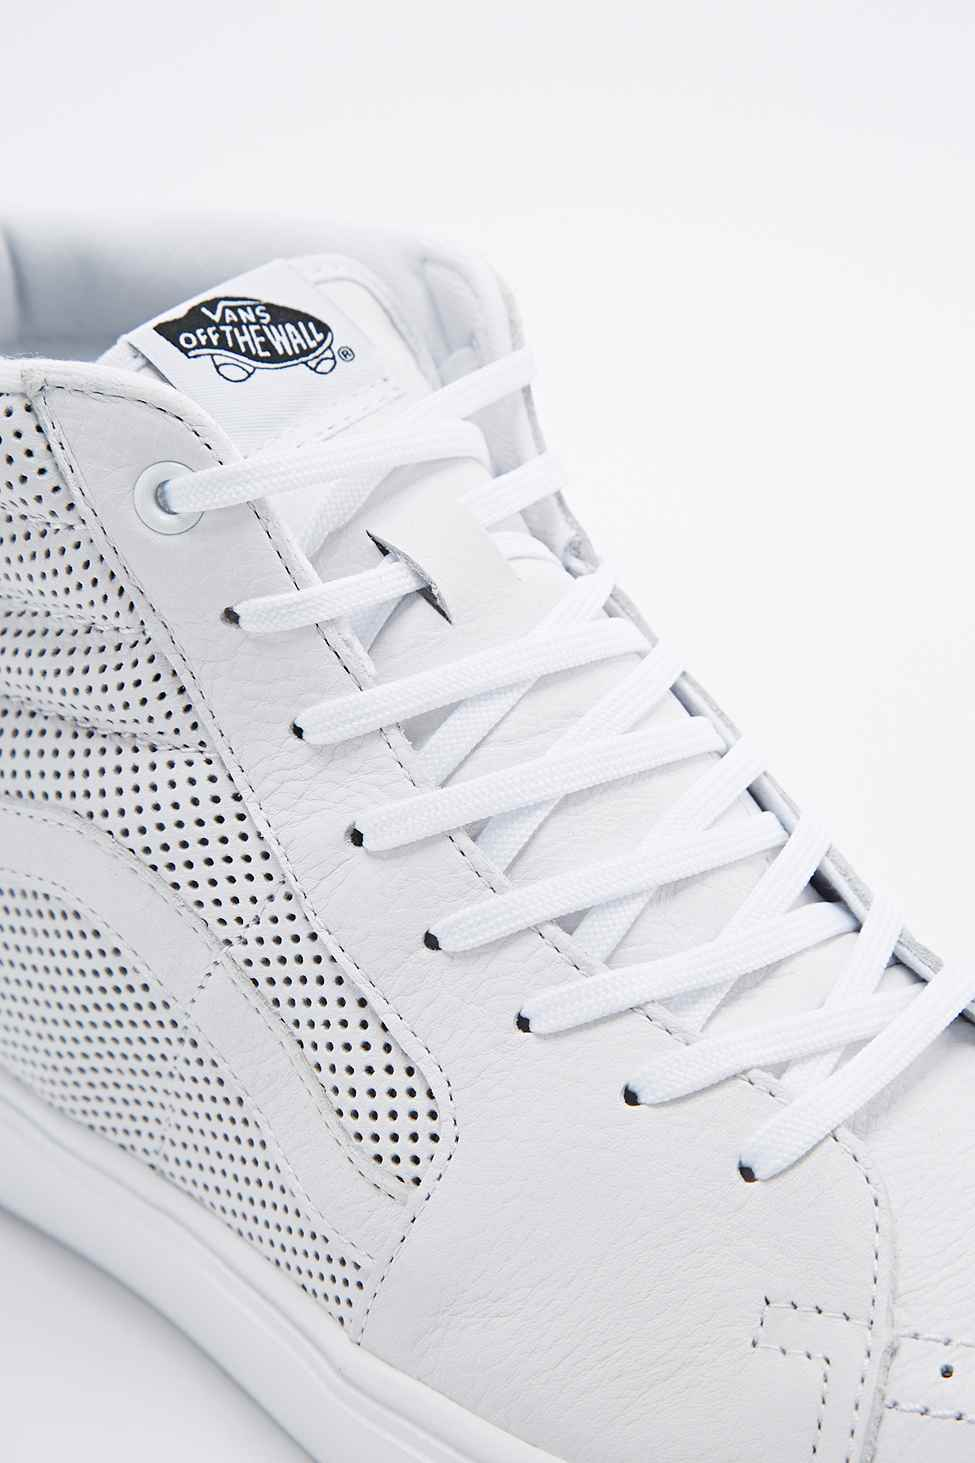 a504b1d59c Vans Sk8-hi Lite Trainers In Perforated White in White for Men - Lyst